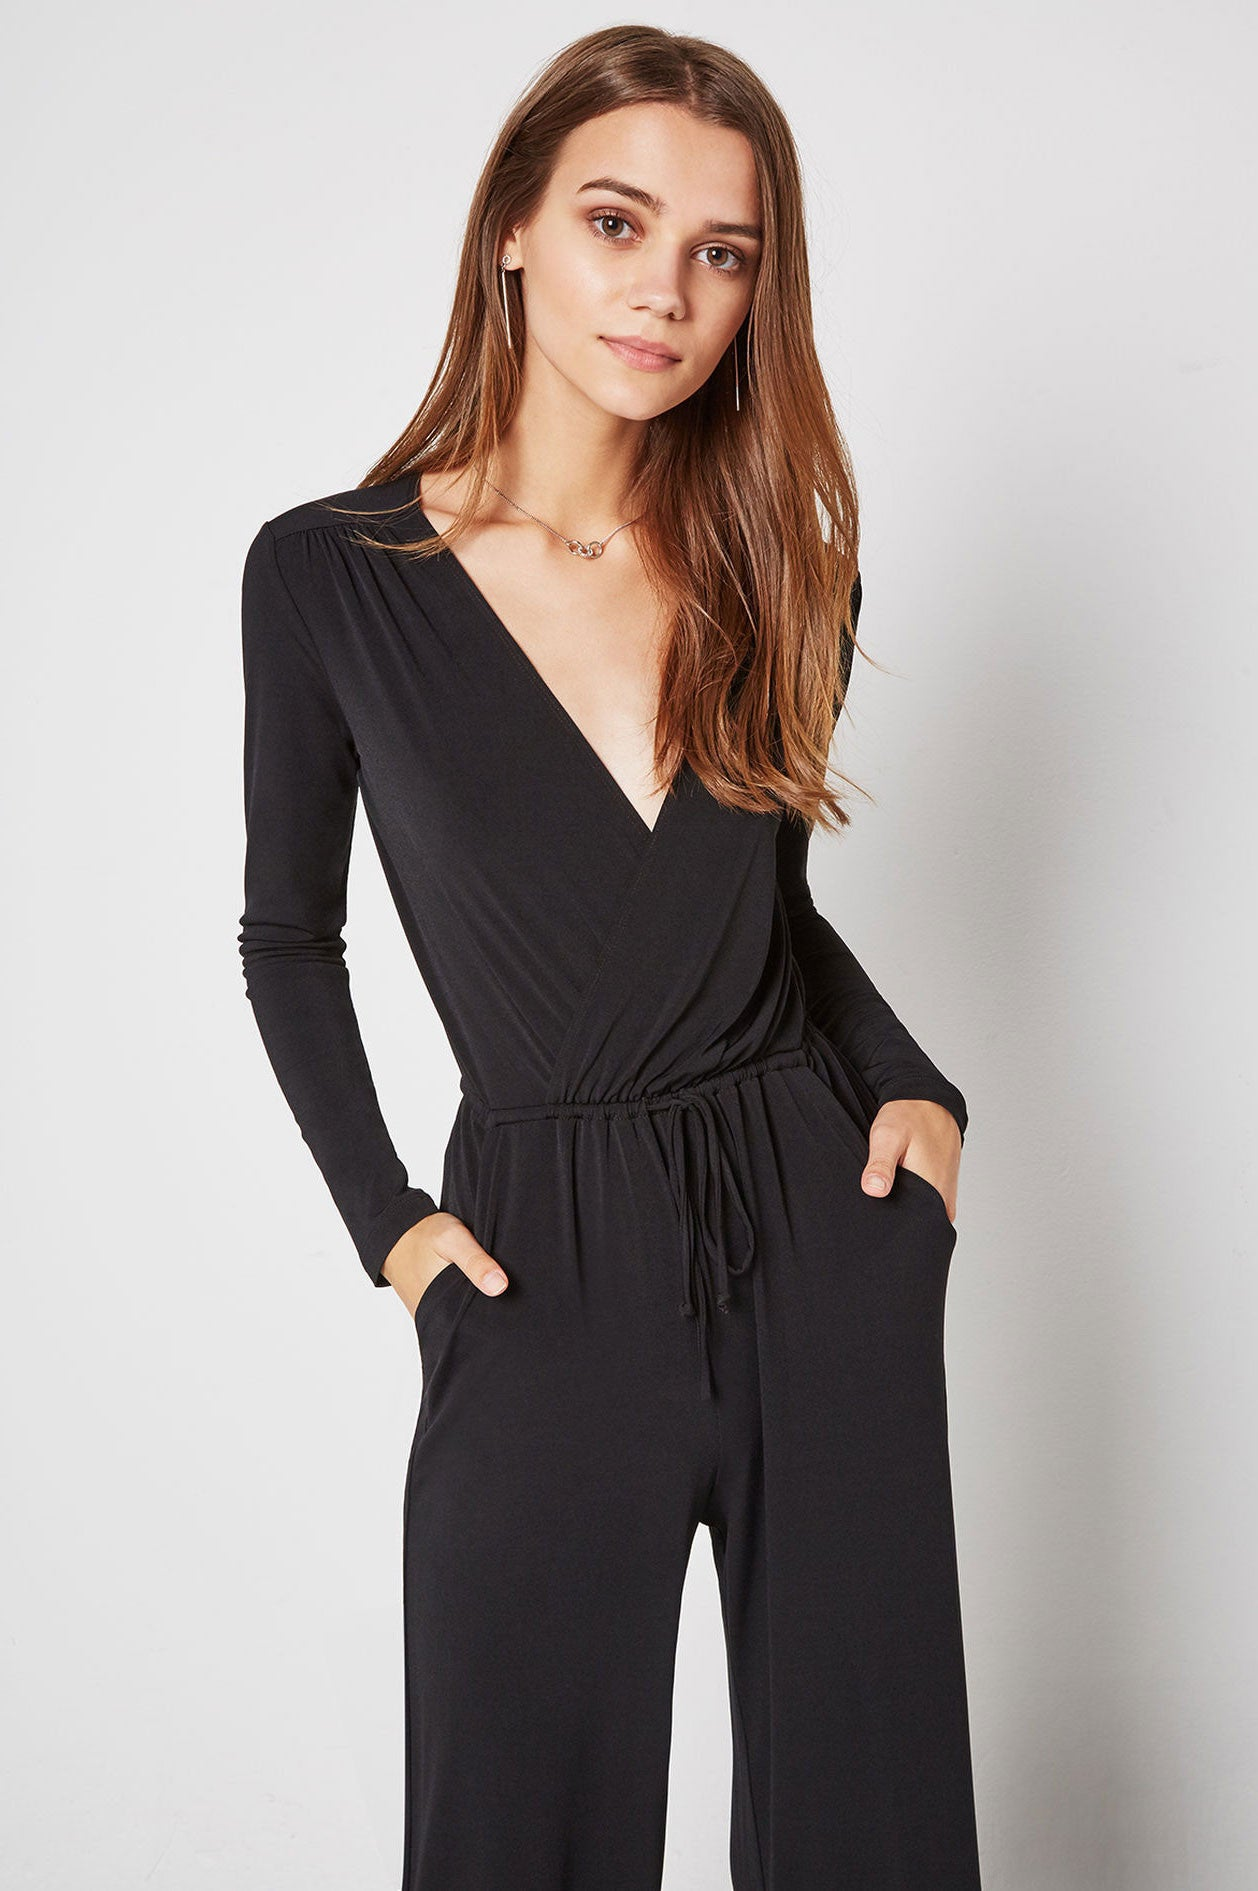 Outfit idea: Women's long sleeve faux wrap v-neck jumpsuit with wide legs.